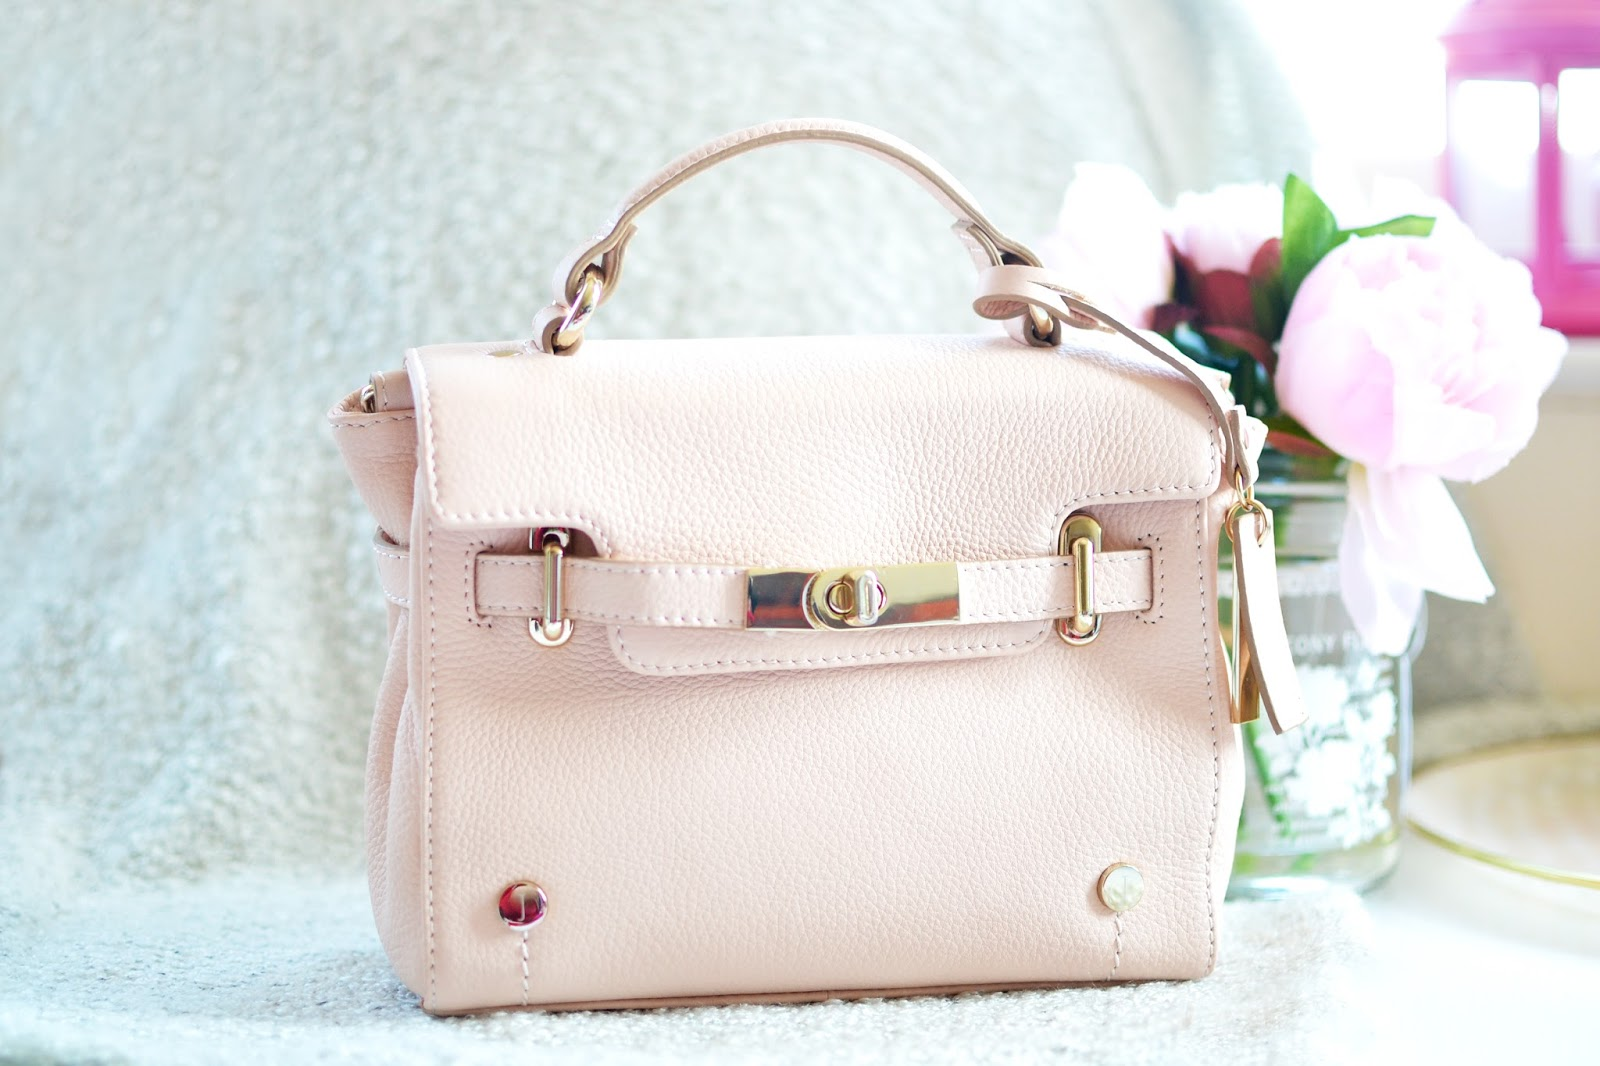 Pink mini bag by jasper conran